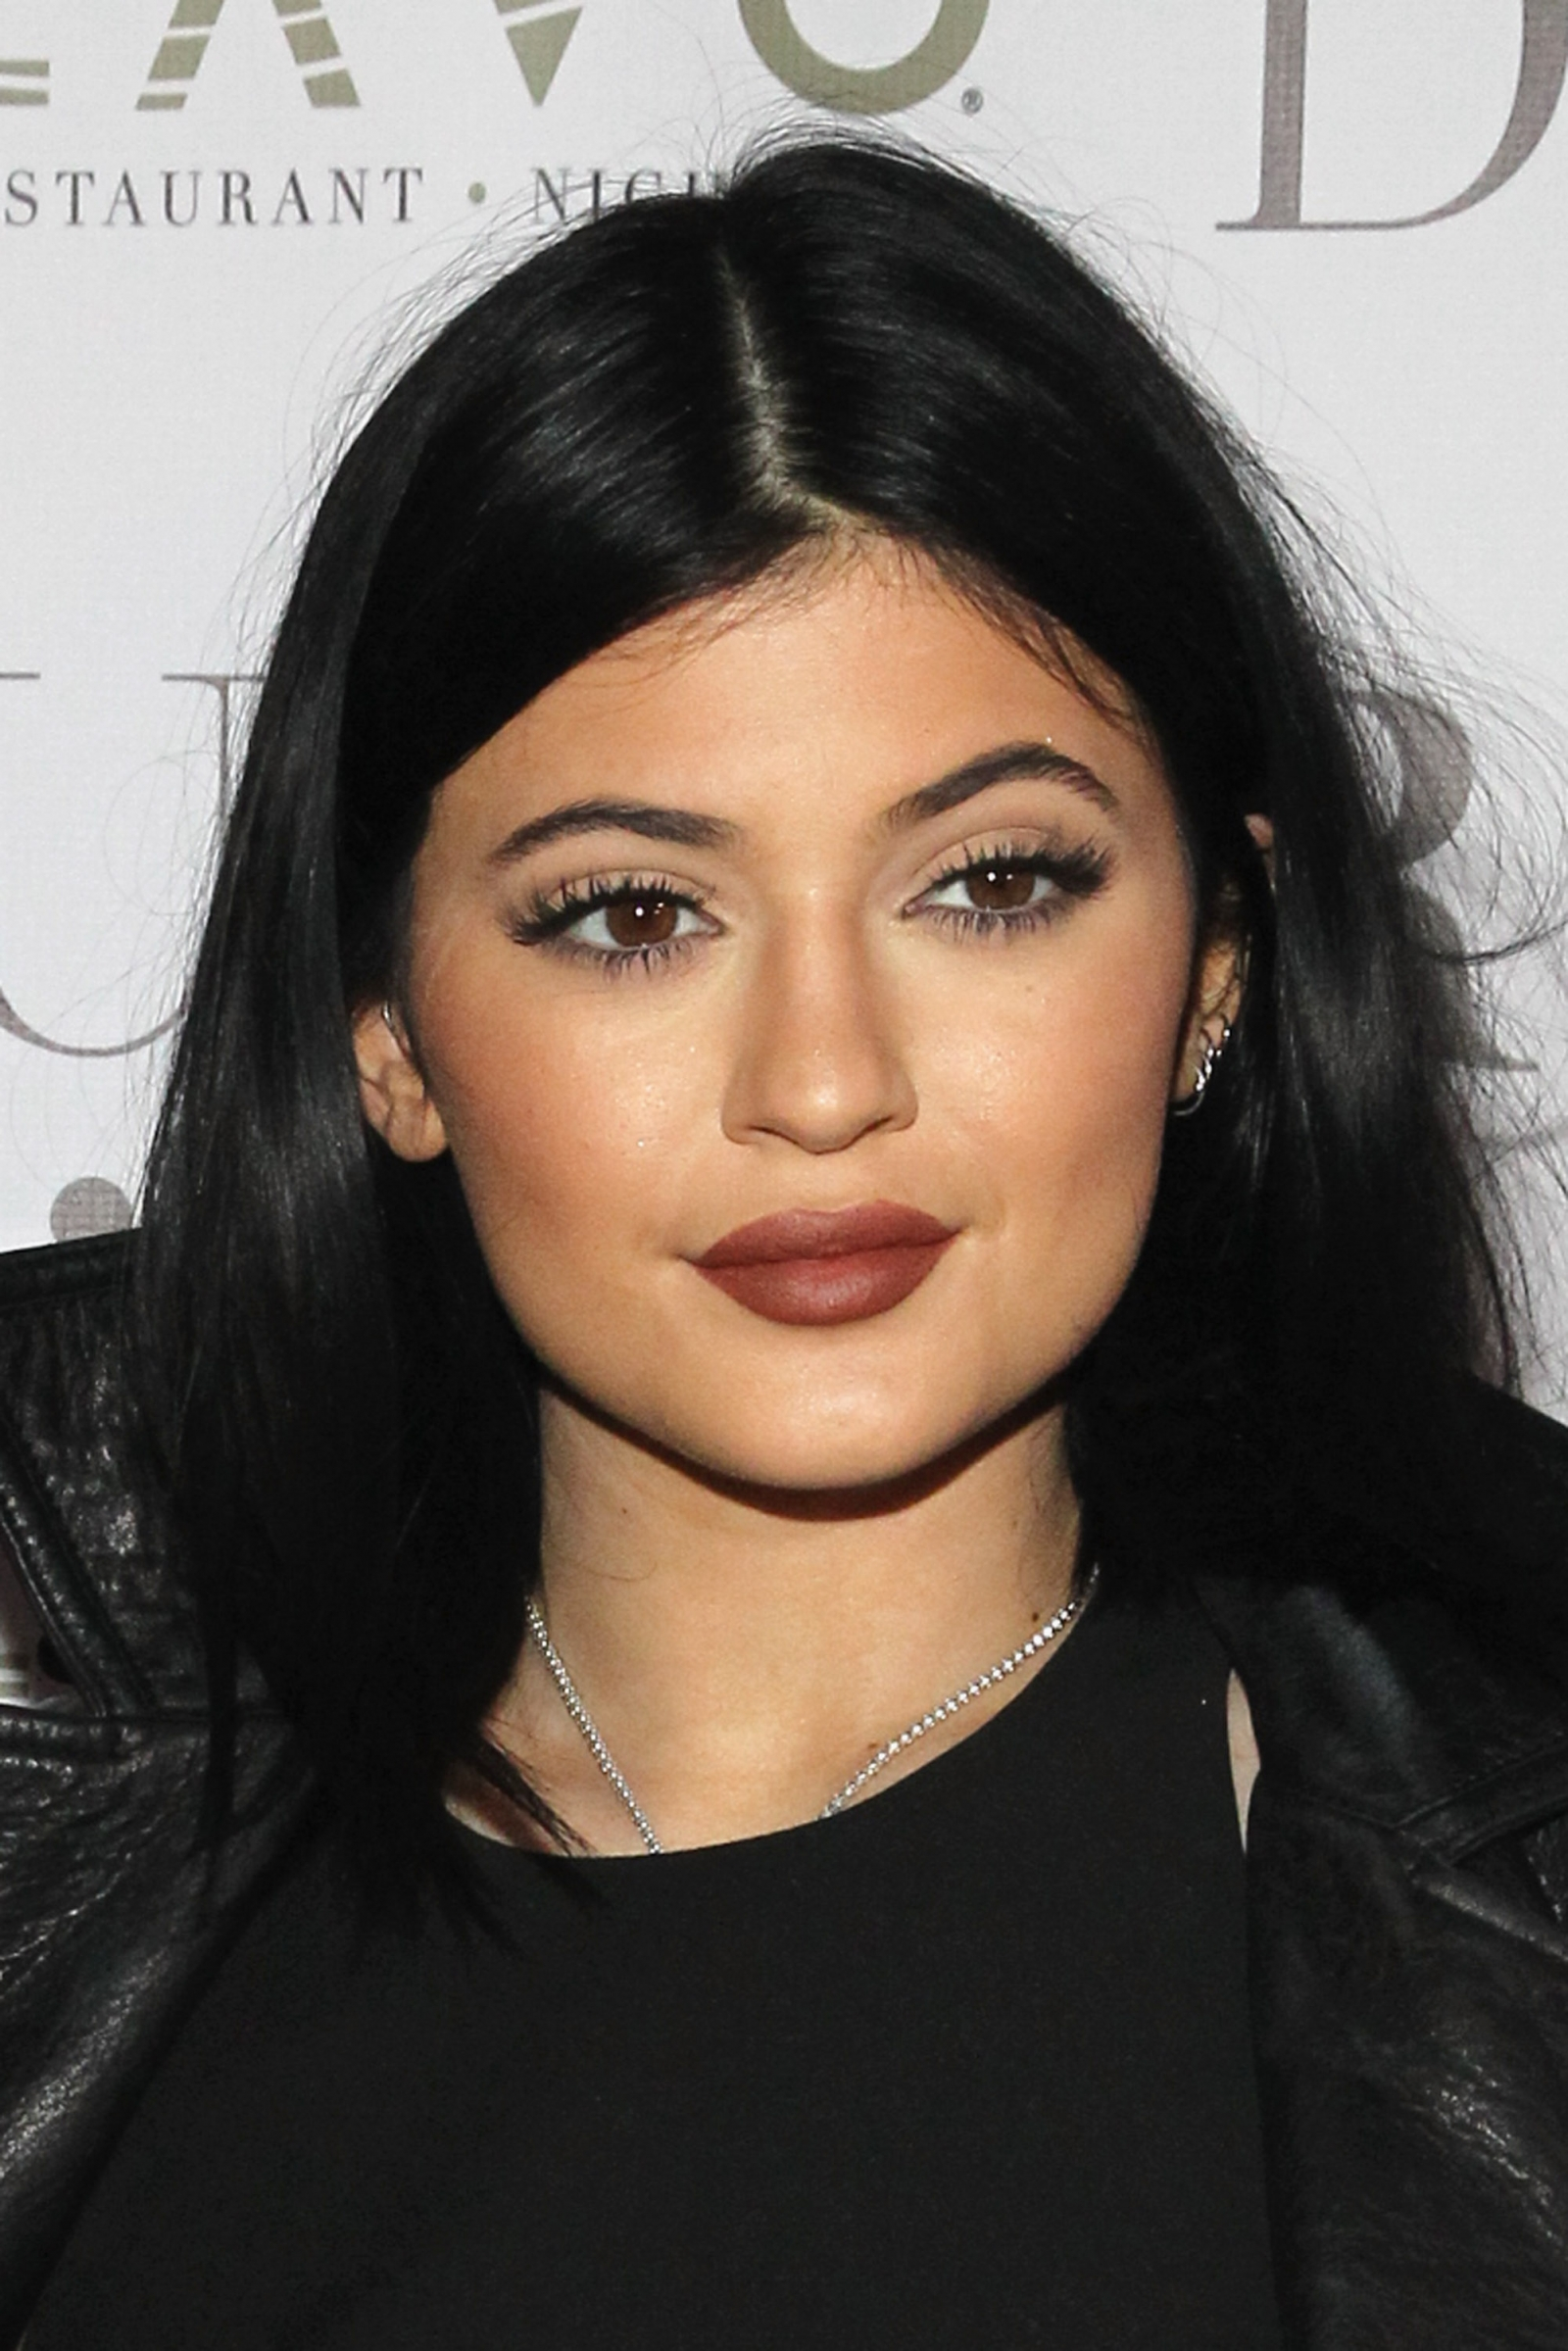 Is Kylie Jenner The New Katy Perry? Reality Star Wants To